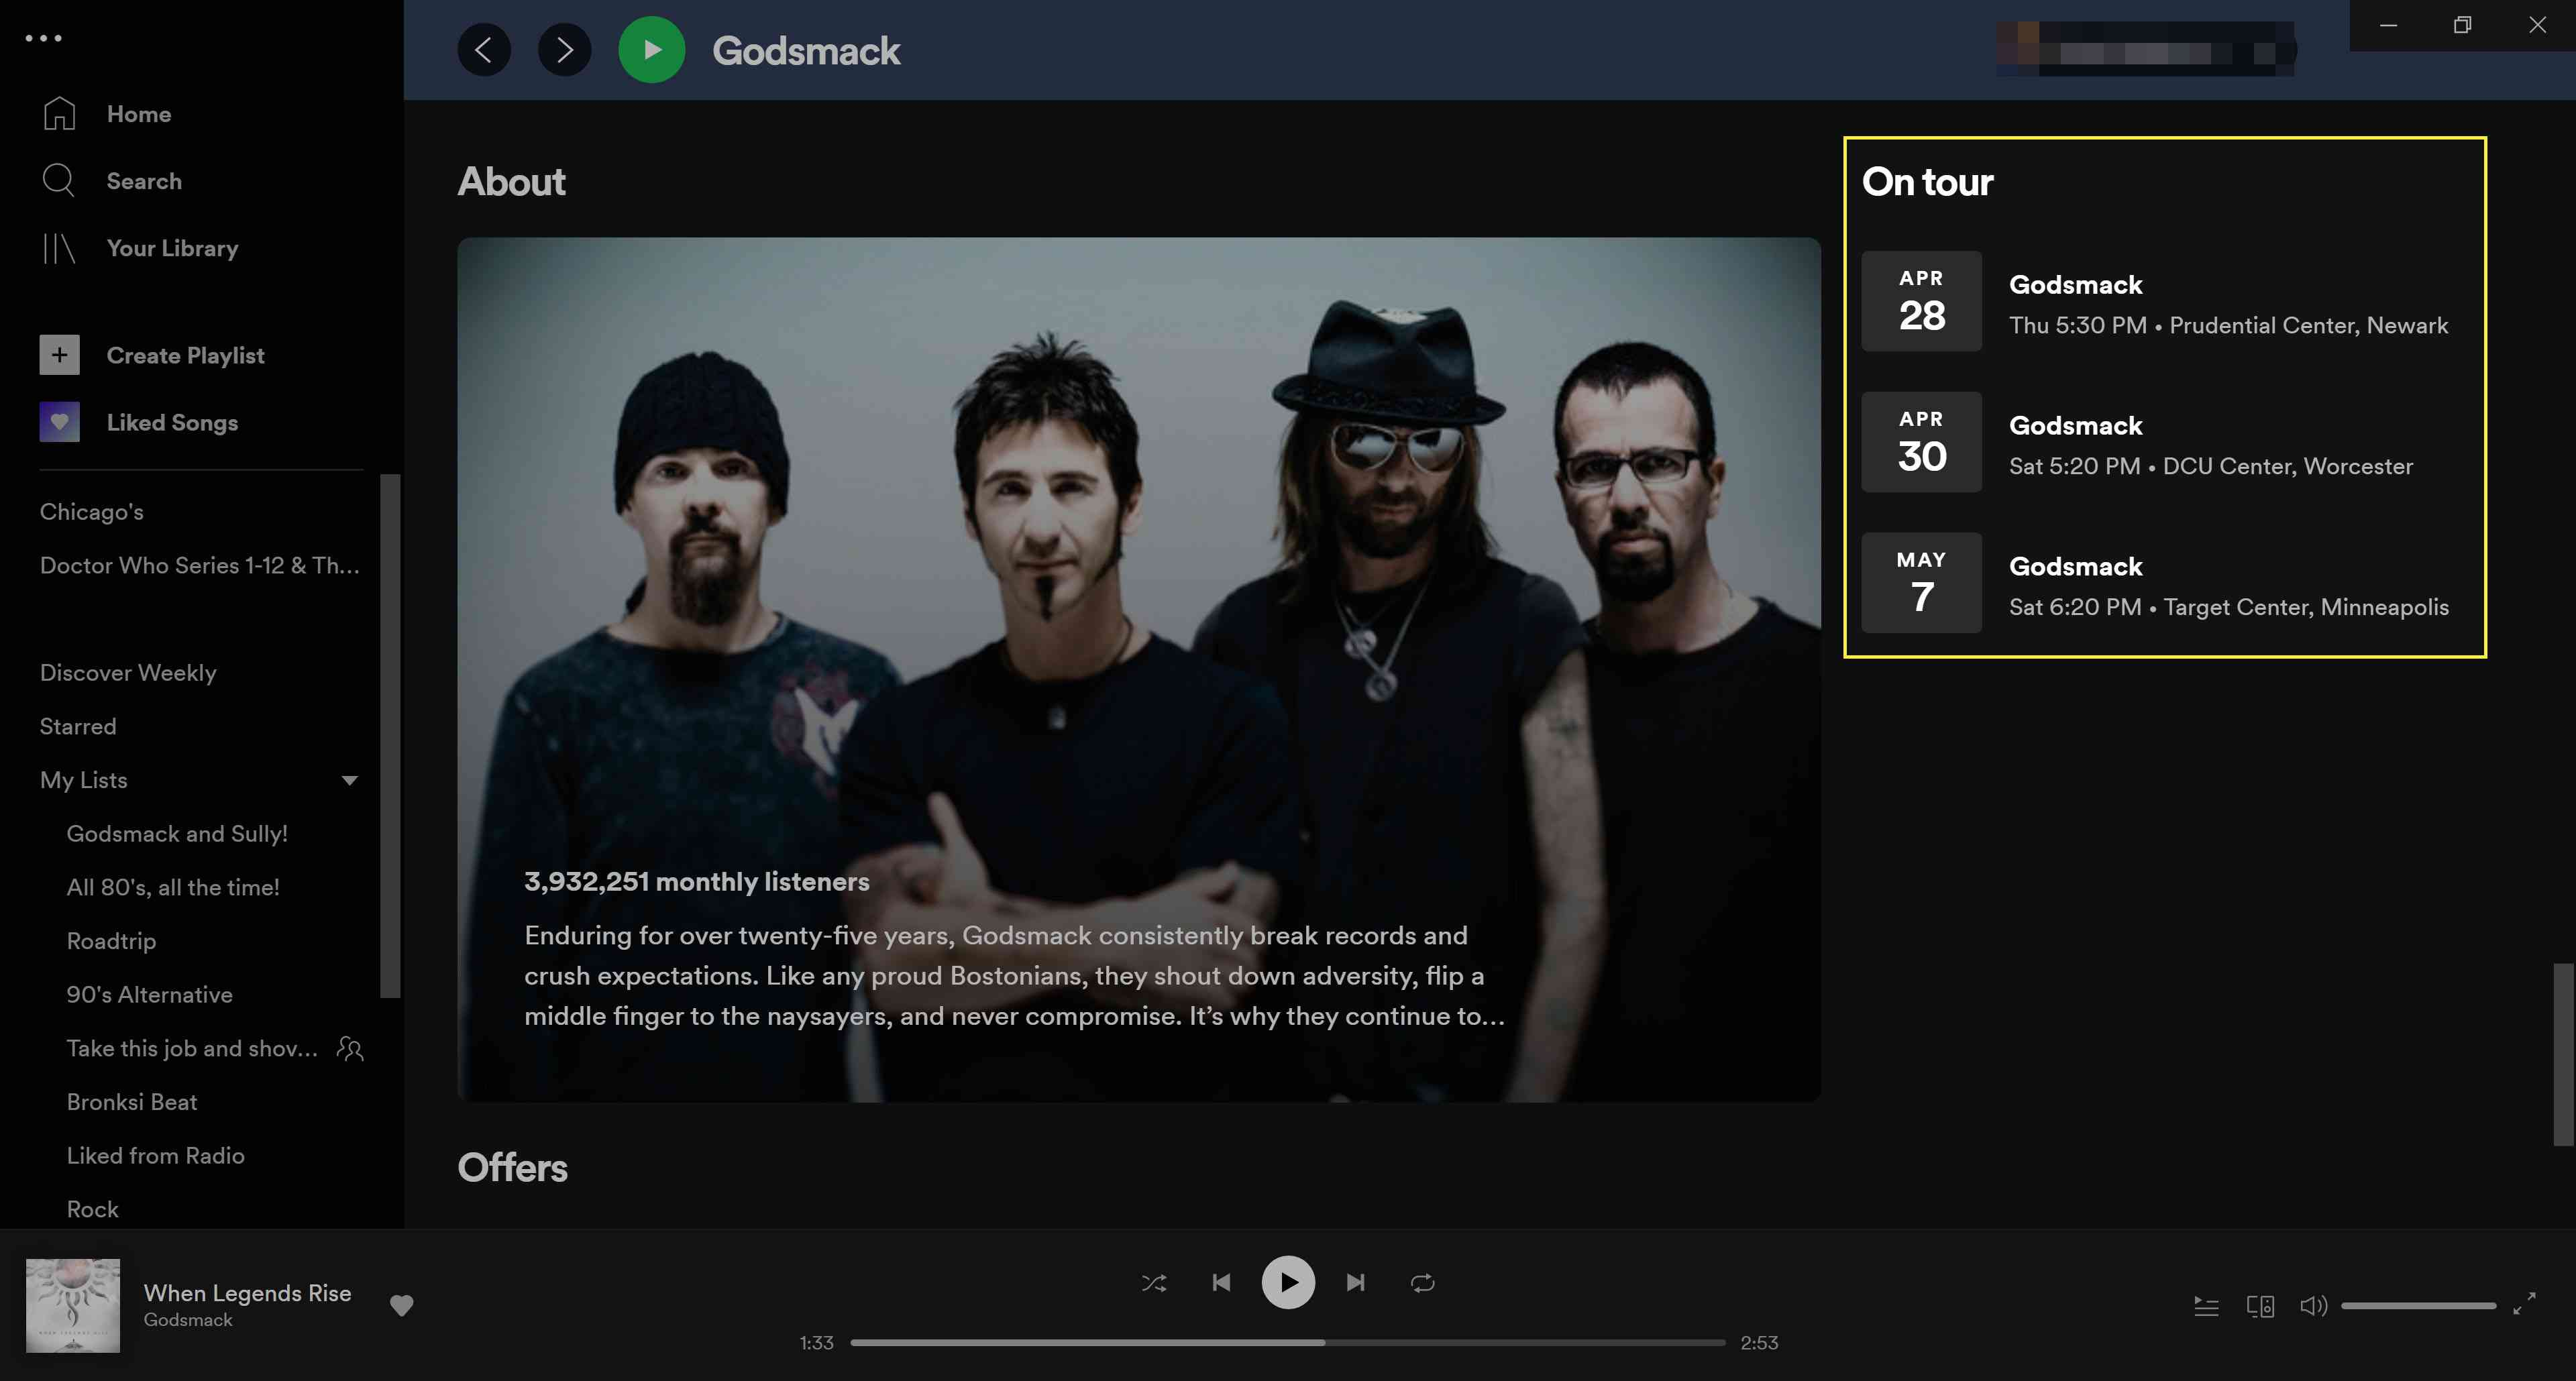 Spotify On tour highlighted under an artists' page.